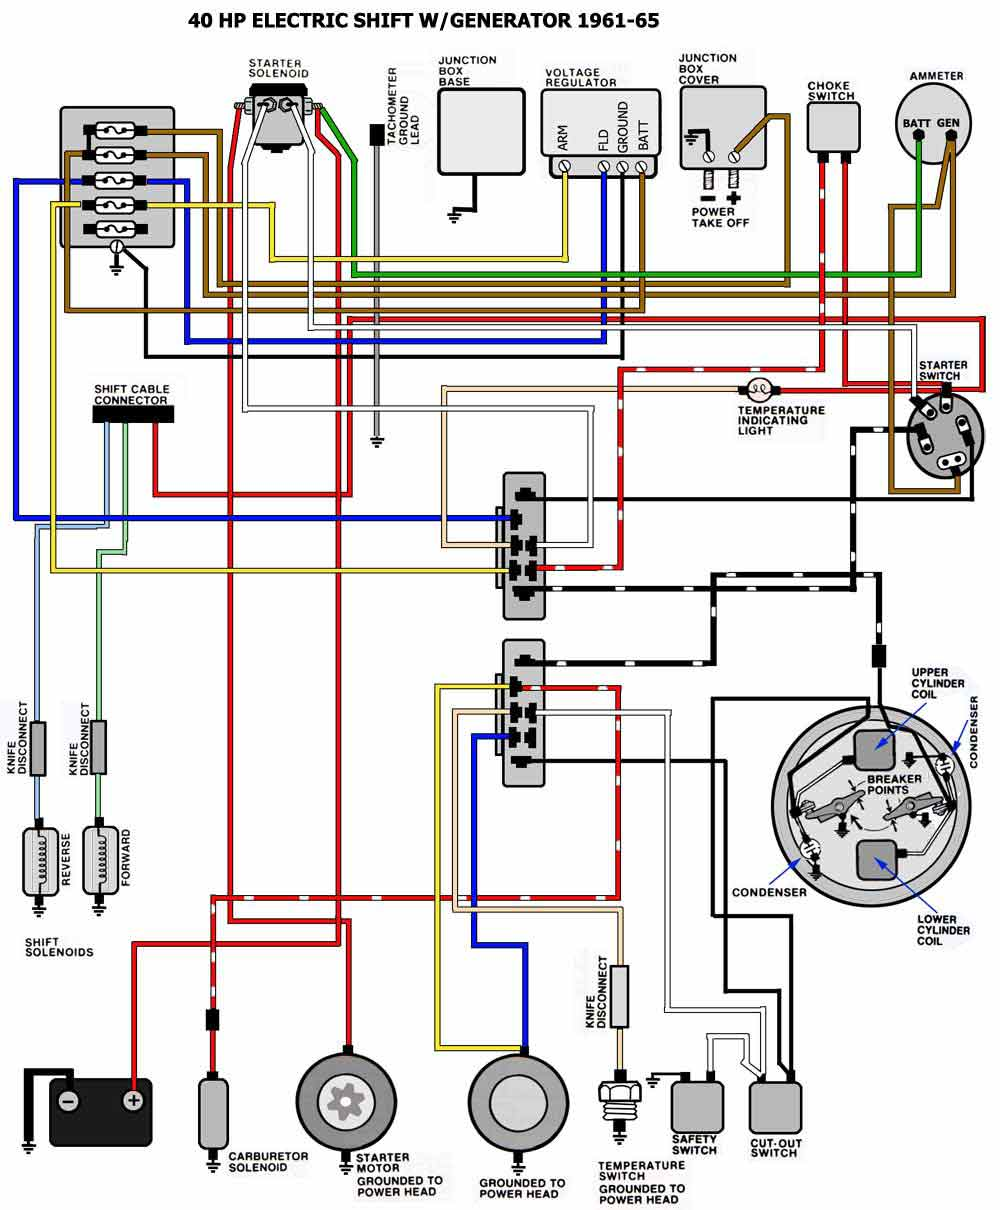 Wiring omc diagram 4201al wiring diagram 40 hp evinrude outboards shifter omc electric shift model 14 wiring harness diagram omc wiring diagrams cheapraybanclubmaster Choice Image